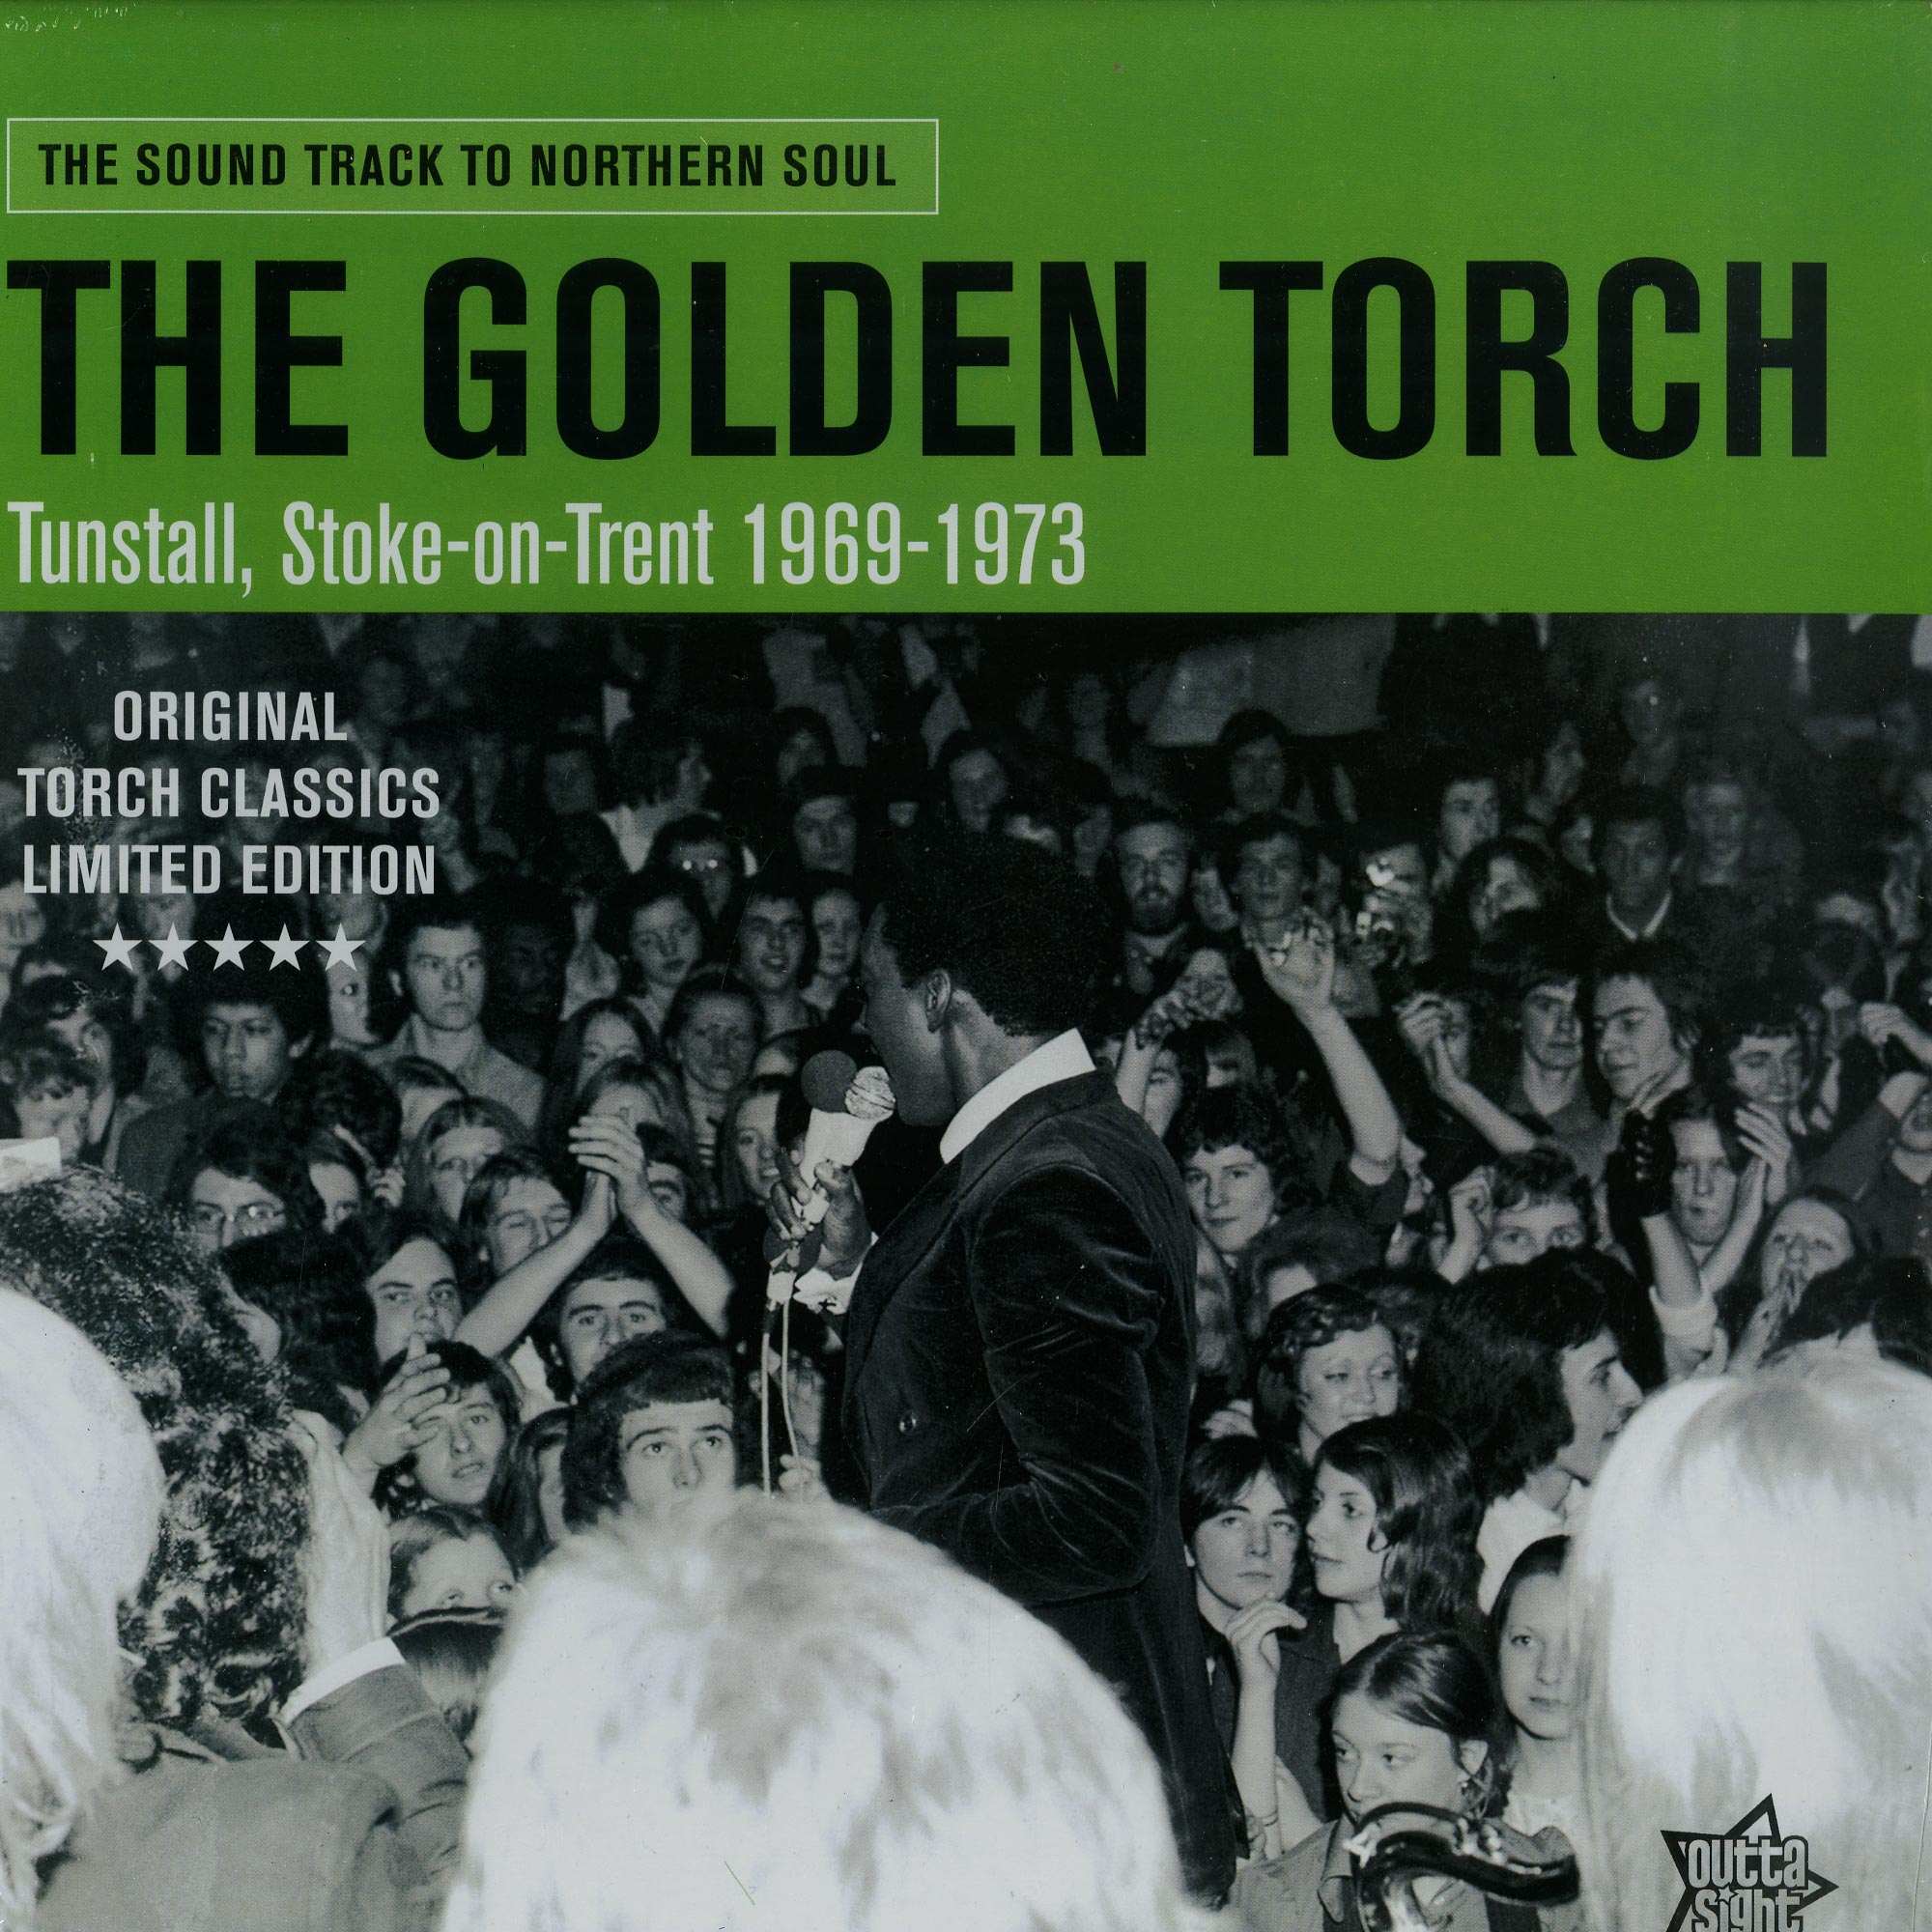 Various Artists - THE GOLDEN TORCH / TUNSTALL. STROKE-ON-TRENT 1969-73